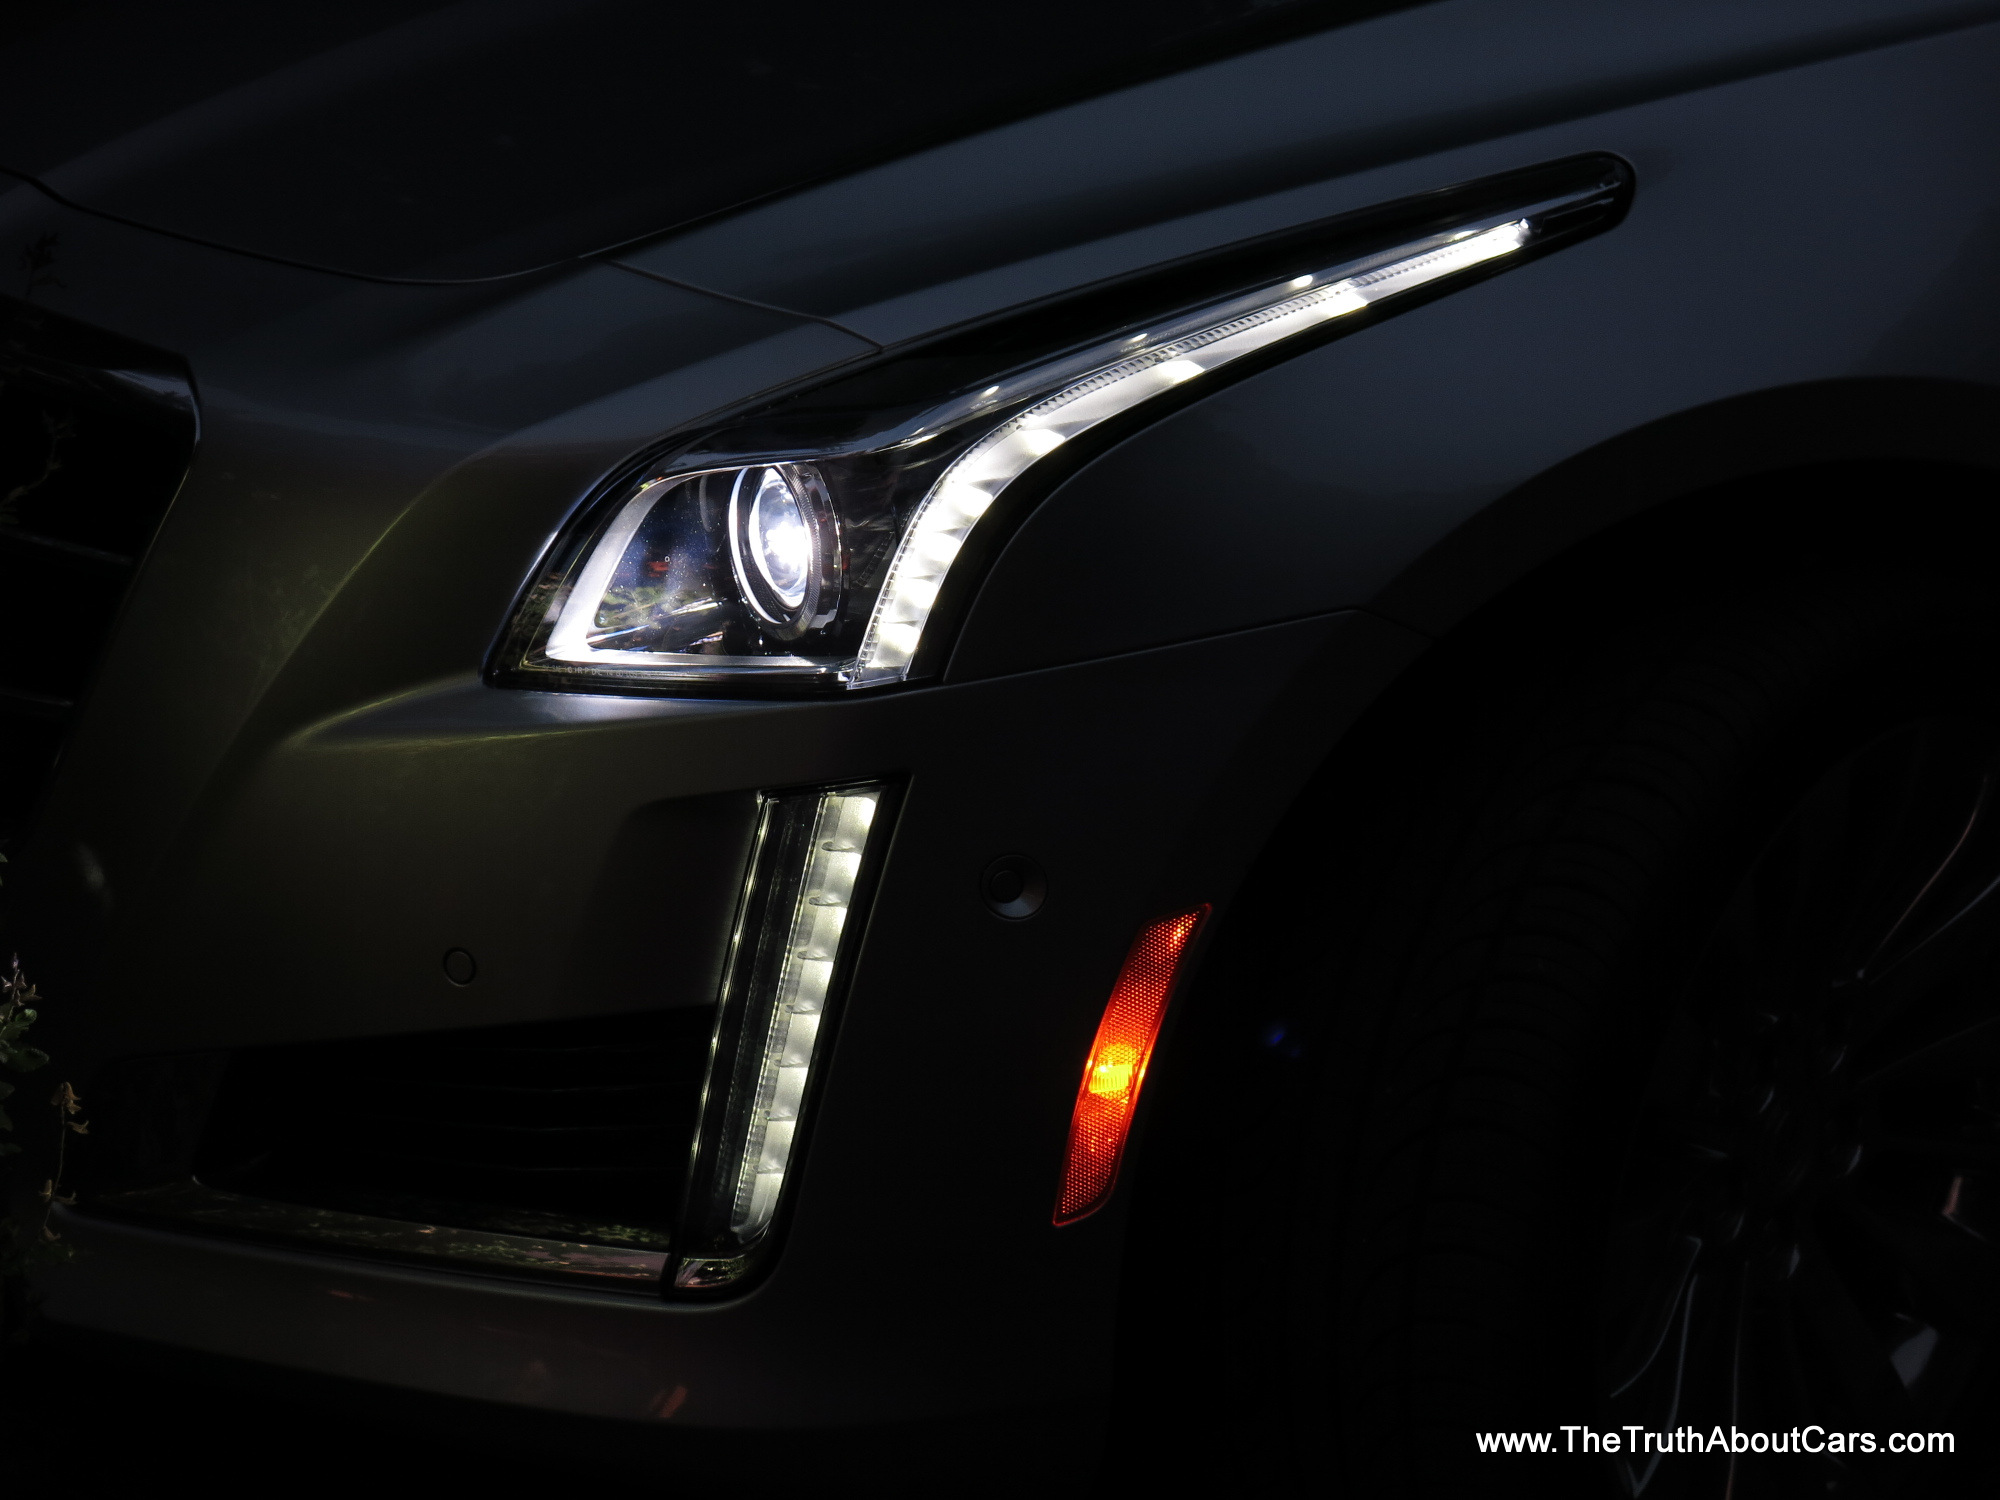 2014 Cadillac Cts 2 0t Exterior 014 The Truth About Cars